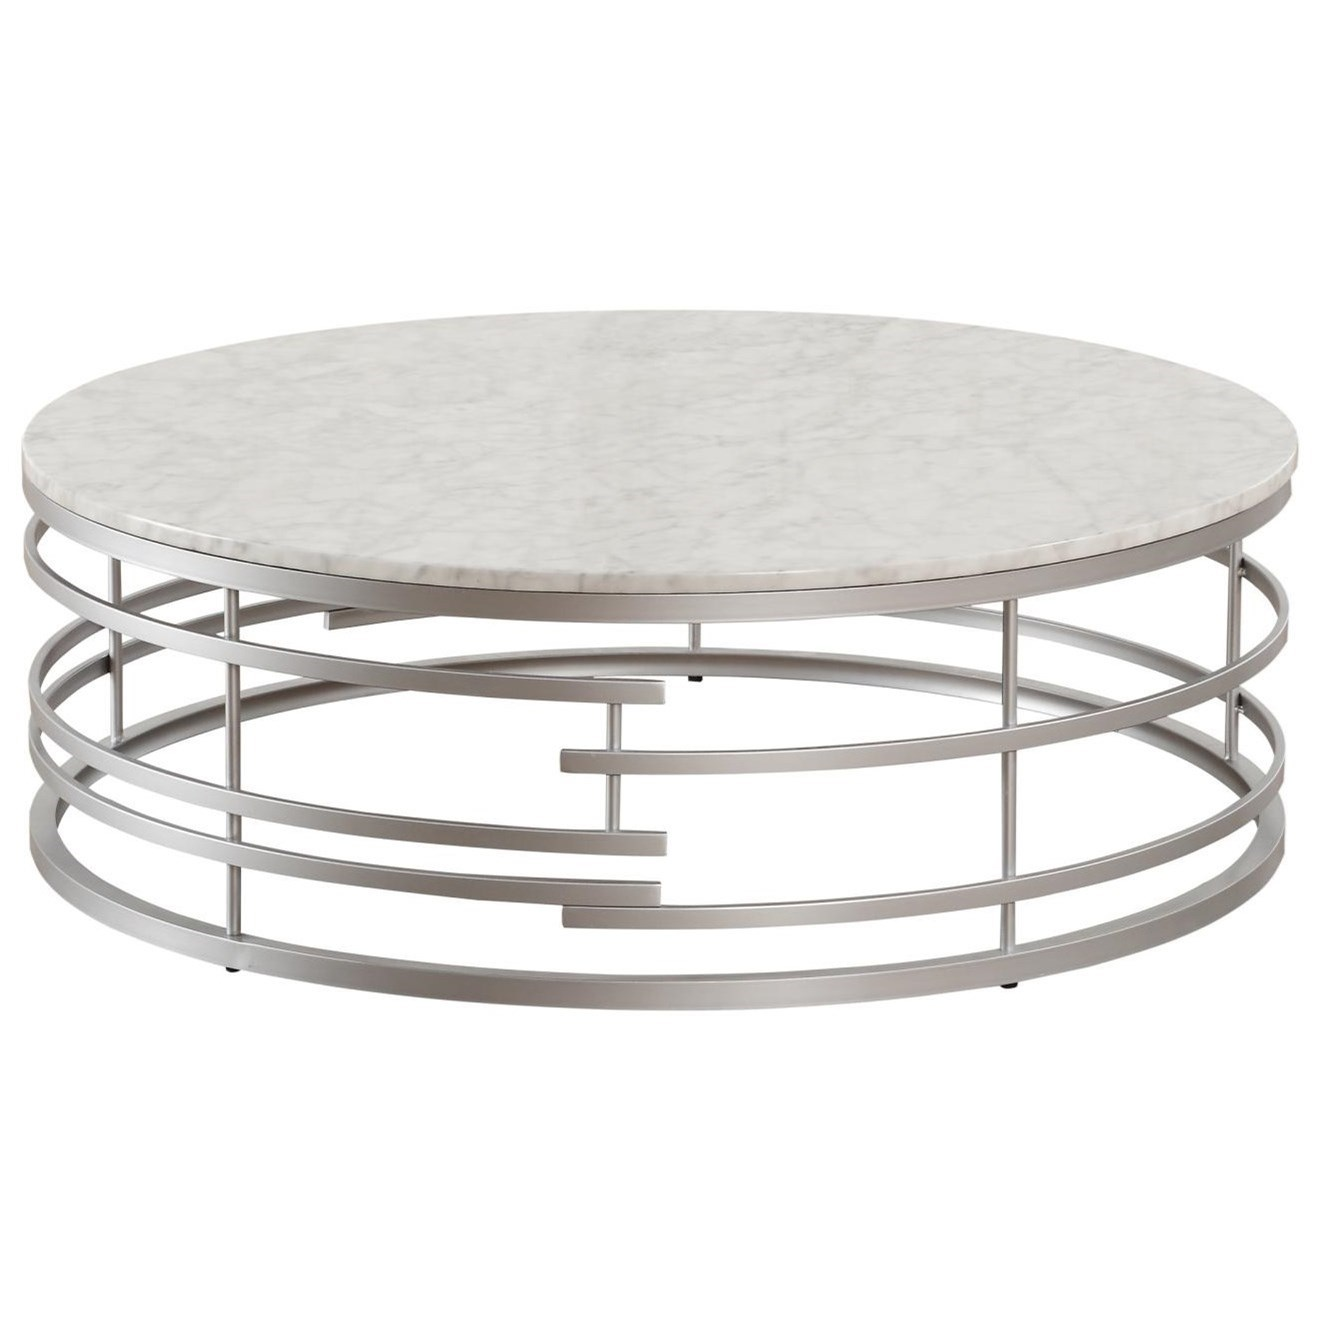 Coffee Table Dimensions Round Coffee Table Big Coffee: Homelegance Brassica Glam Large Round Cocktail Table With